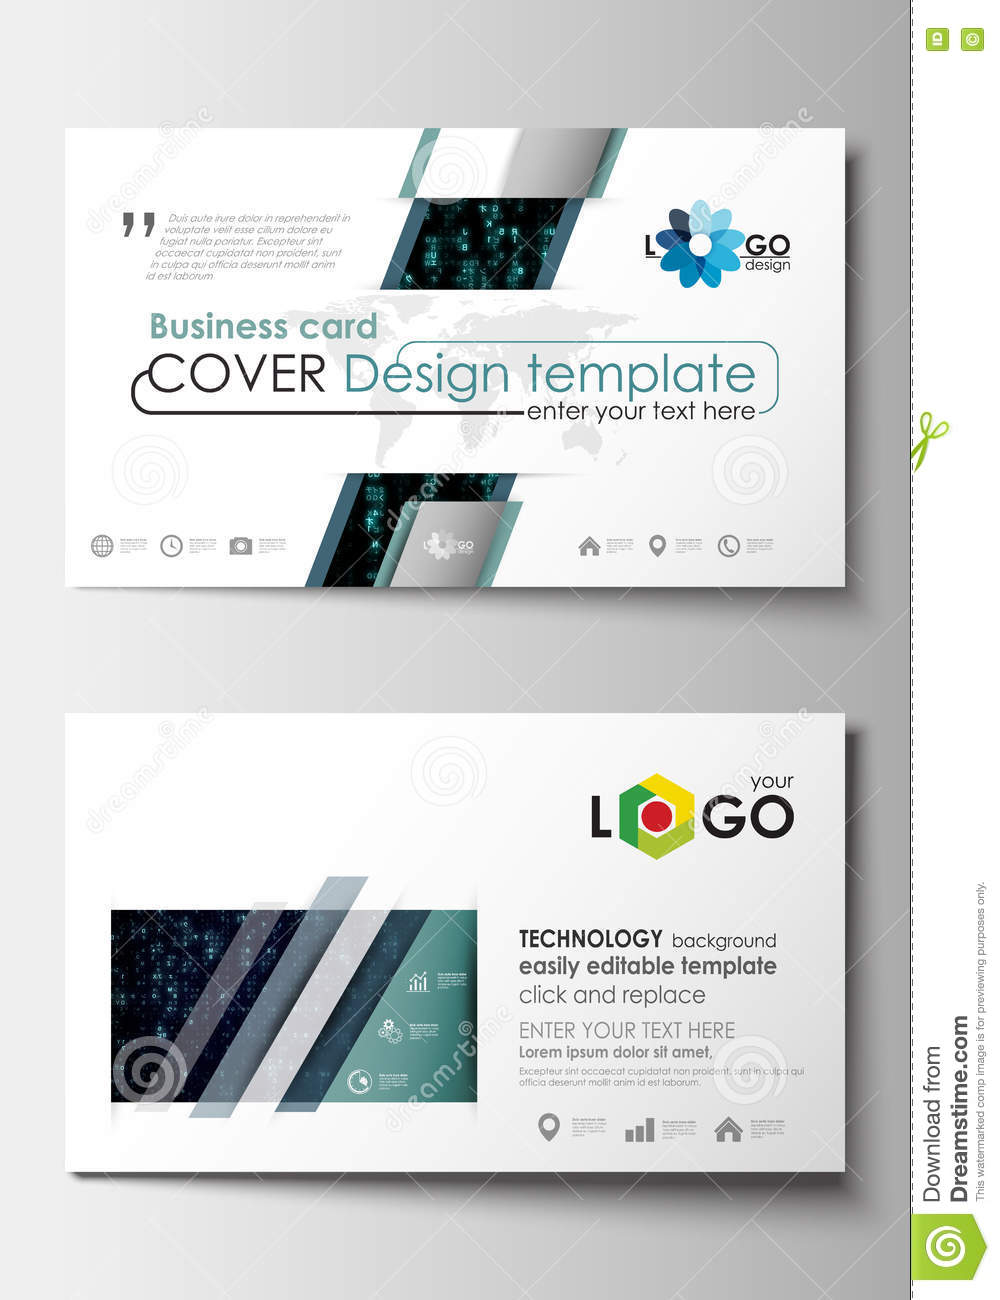 Business card templates cover design template easy editable blank download business card templates cover design template easy editable blank flat layout reheart